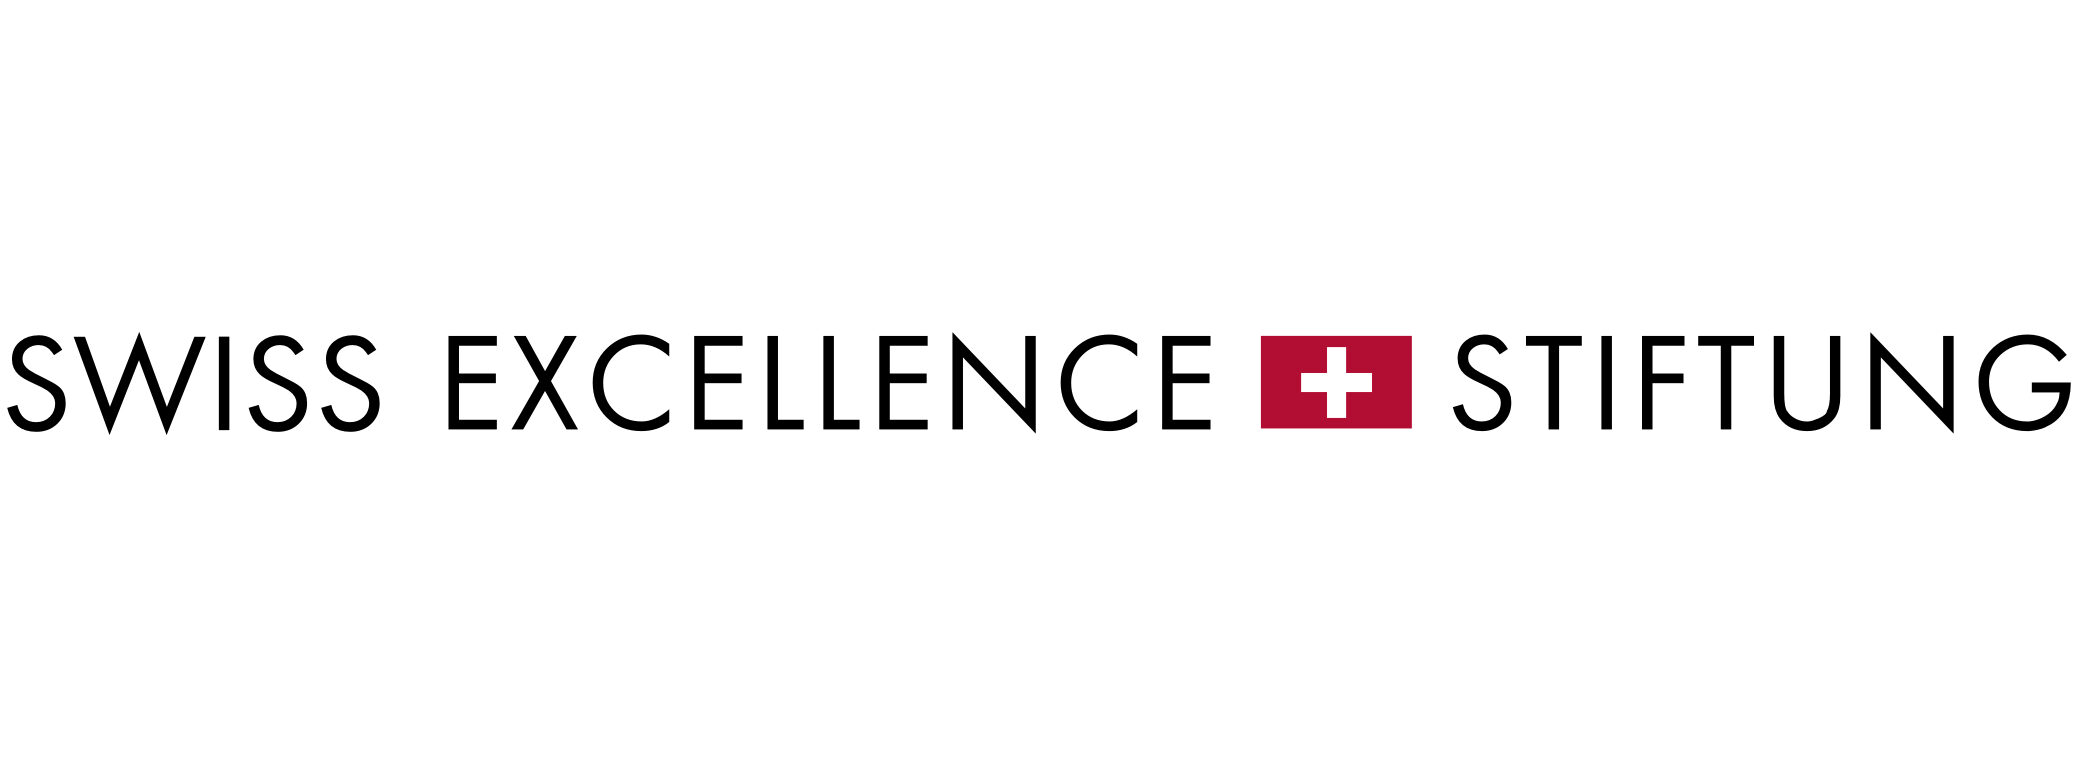 Swiss Excellence Stiftung